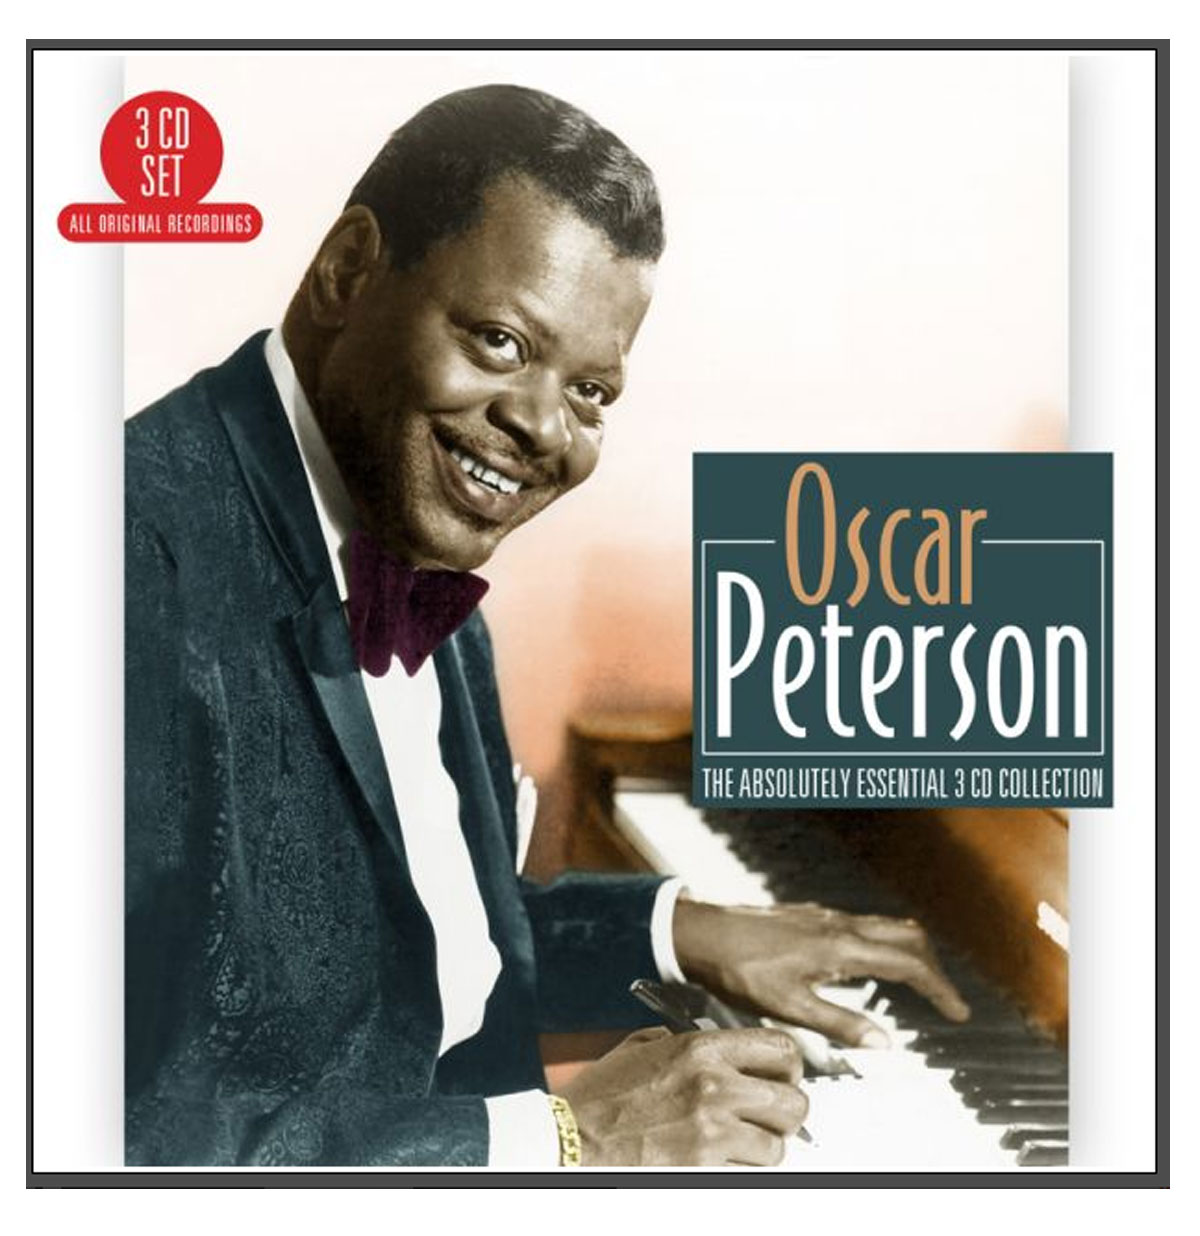 Oscar Peterson - The Absolutely Essential 3 CD Collection